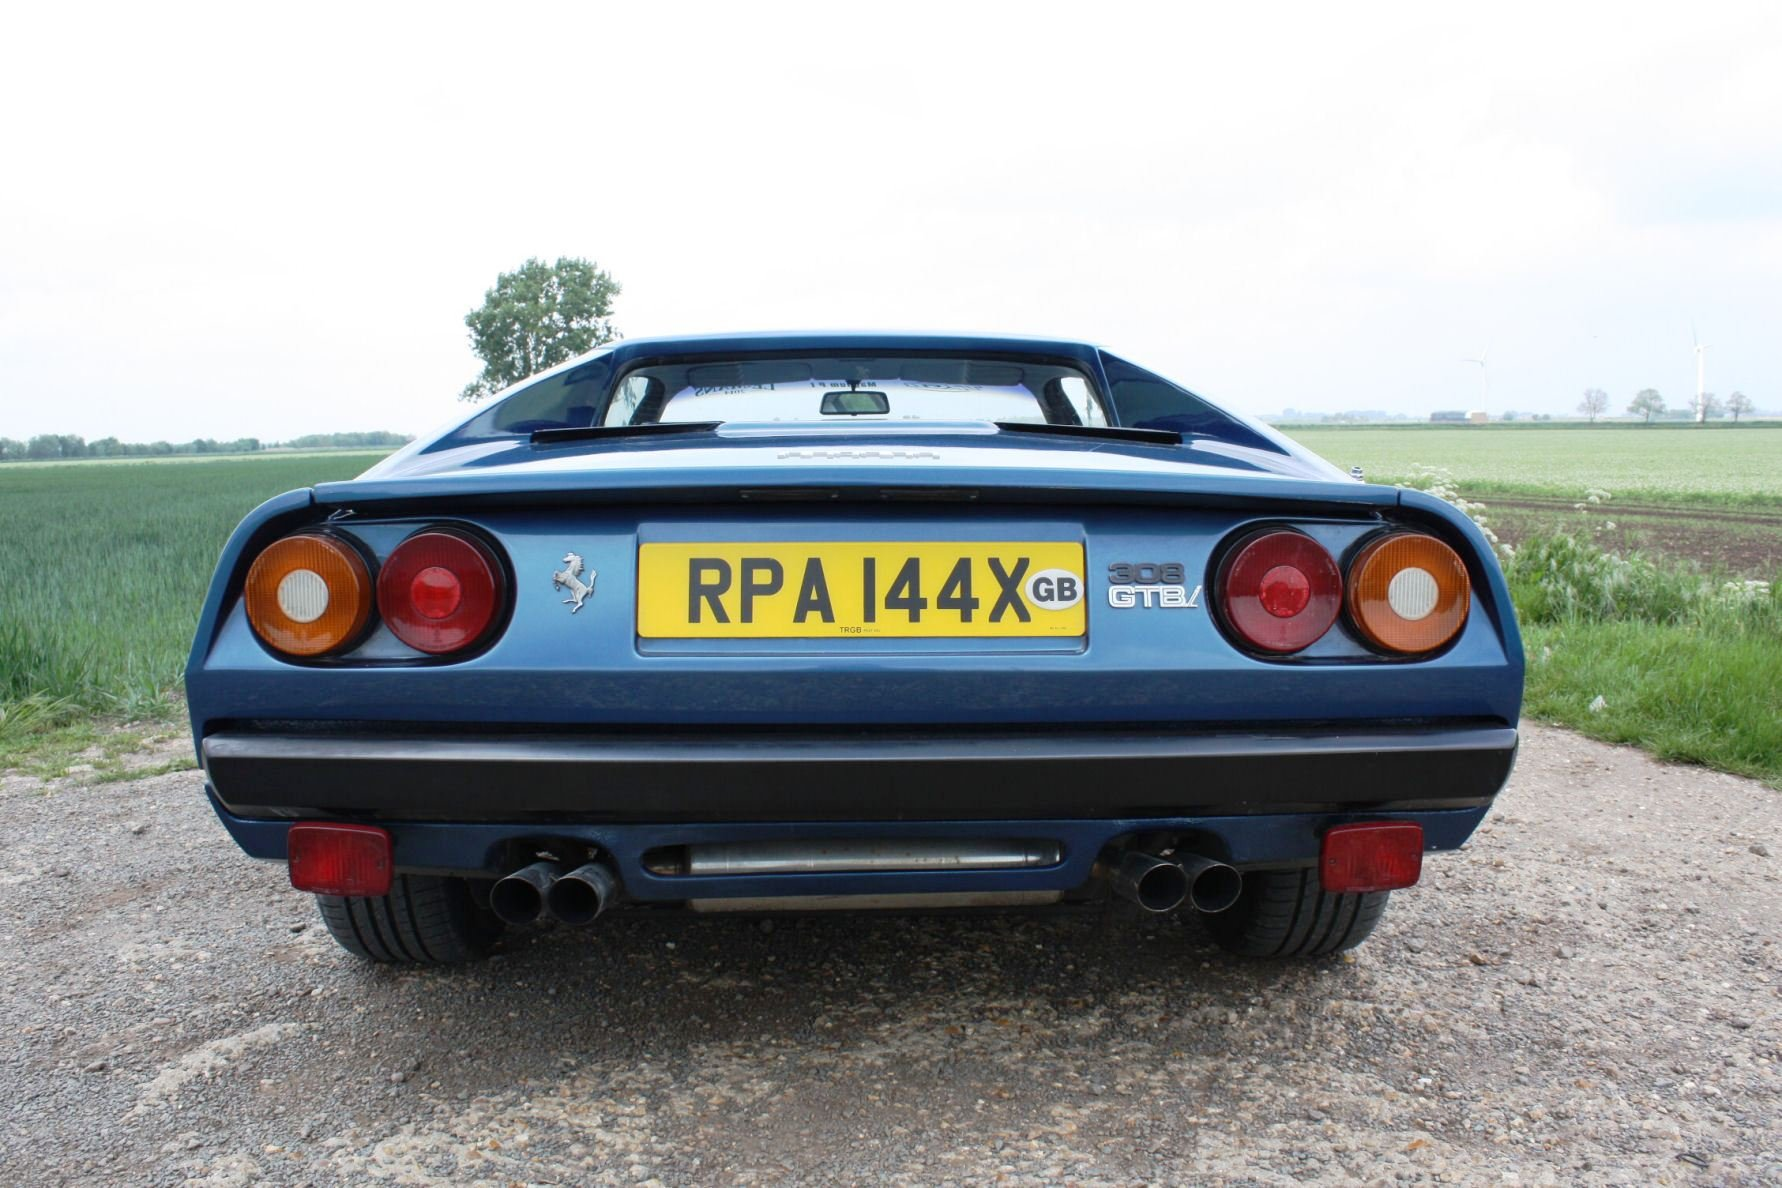 FERRARI 308 GTBi 1981. EXCELLENT CONDITION THROUGHOUT For Sale (picture 6 of 6)